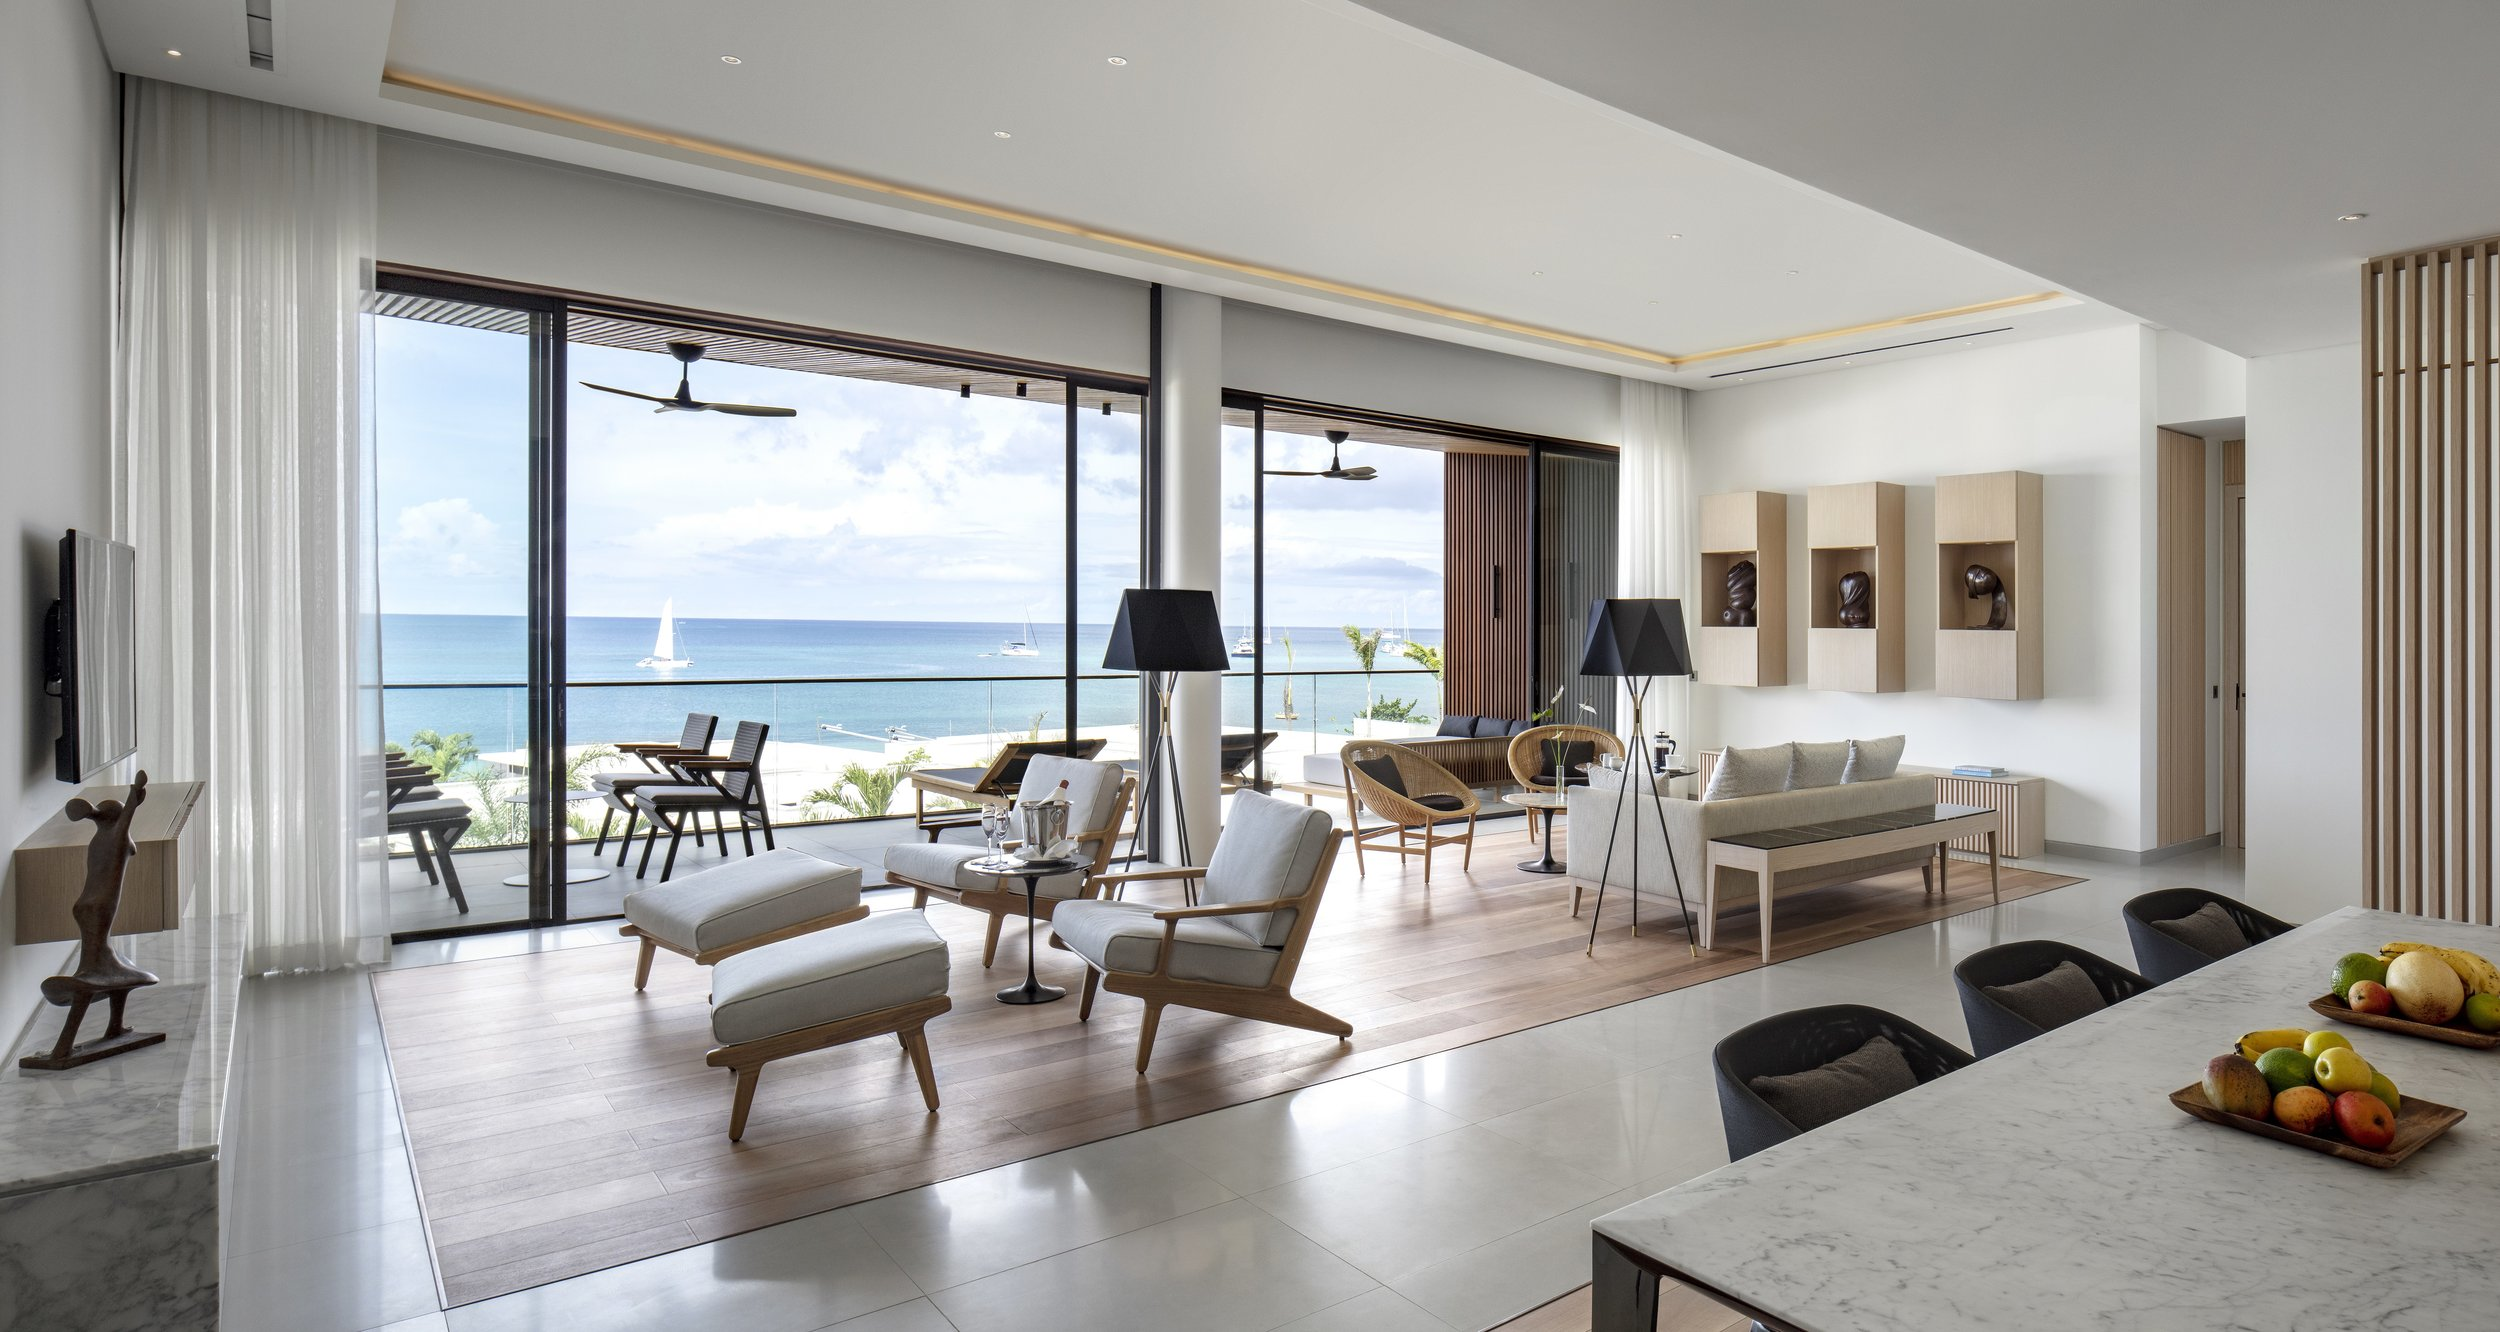 Penthouse Suite Looking Out.jpg